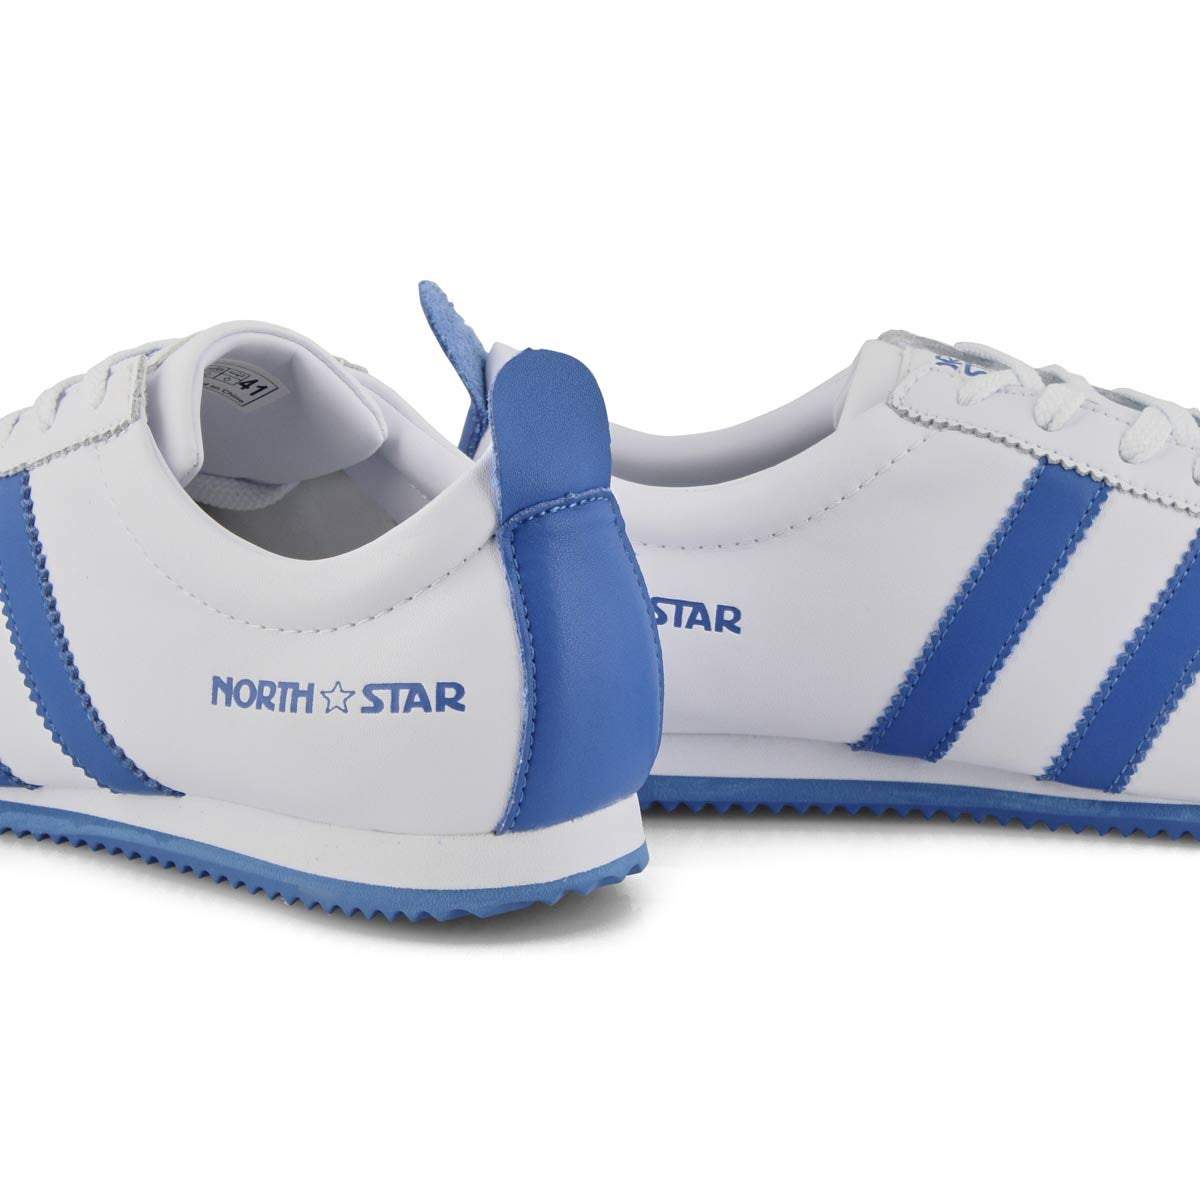 Mns North Star One white/blue sneaker